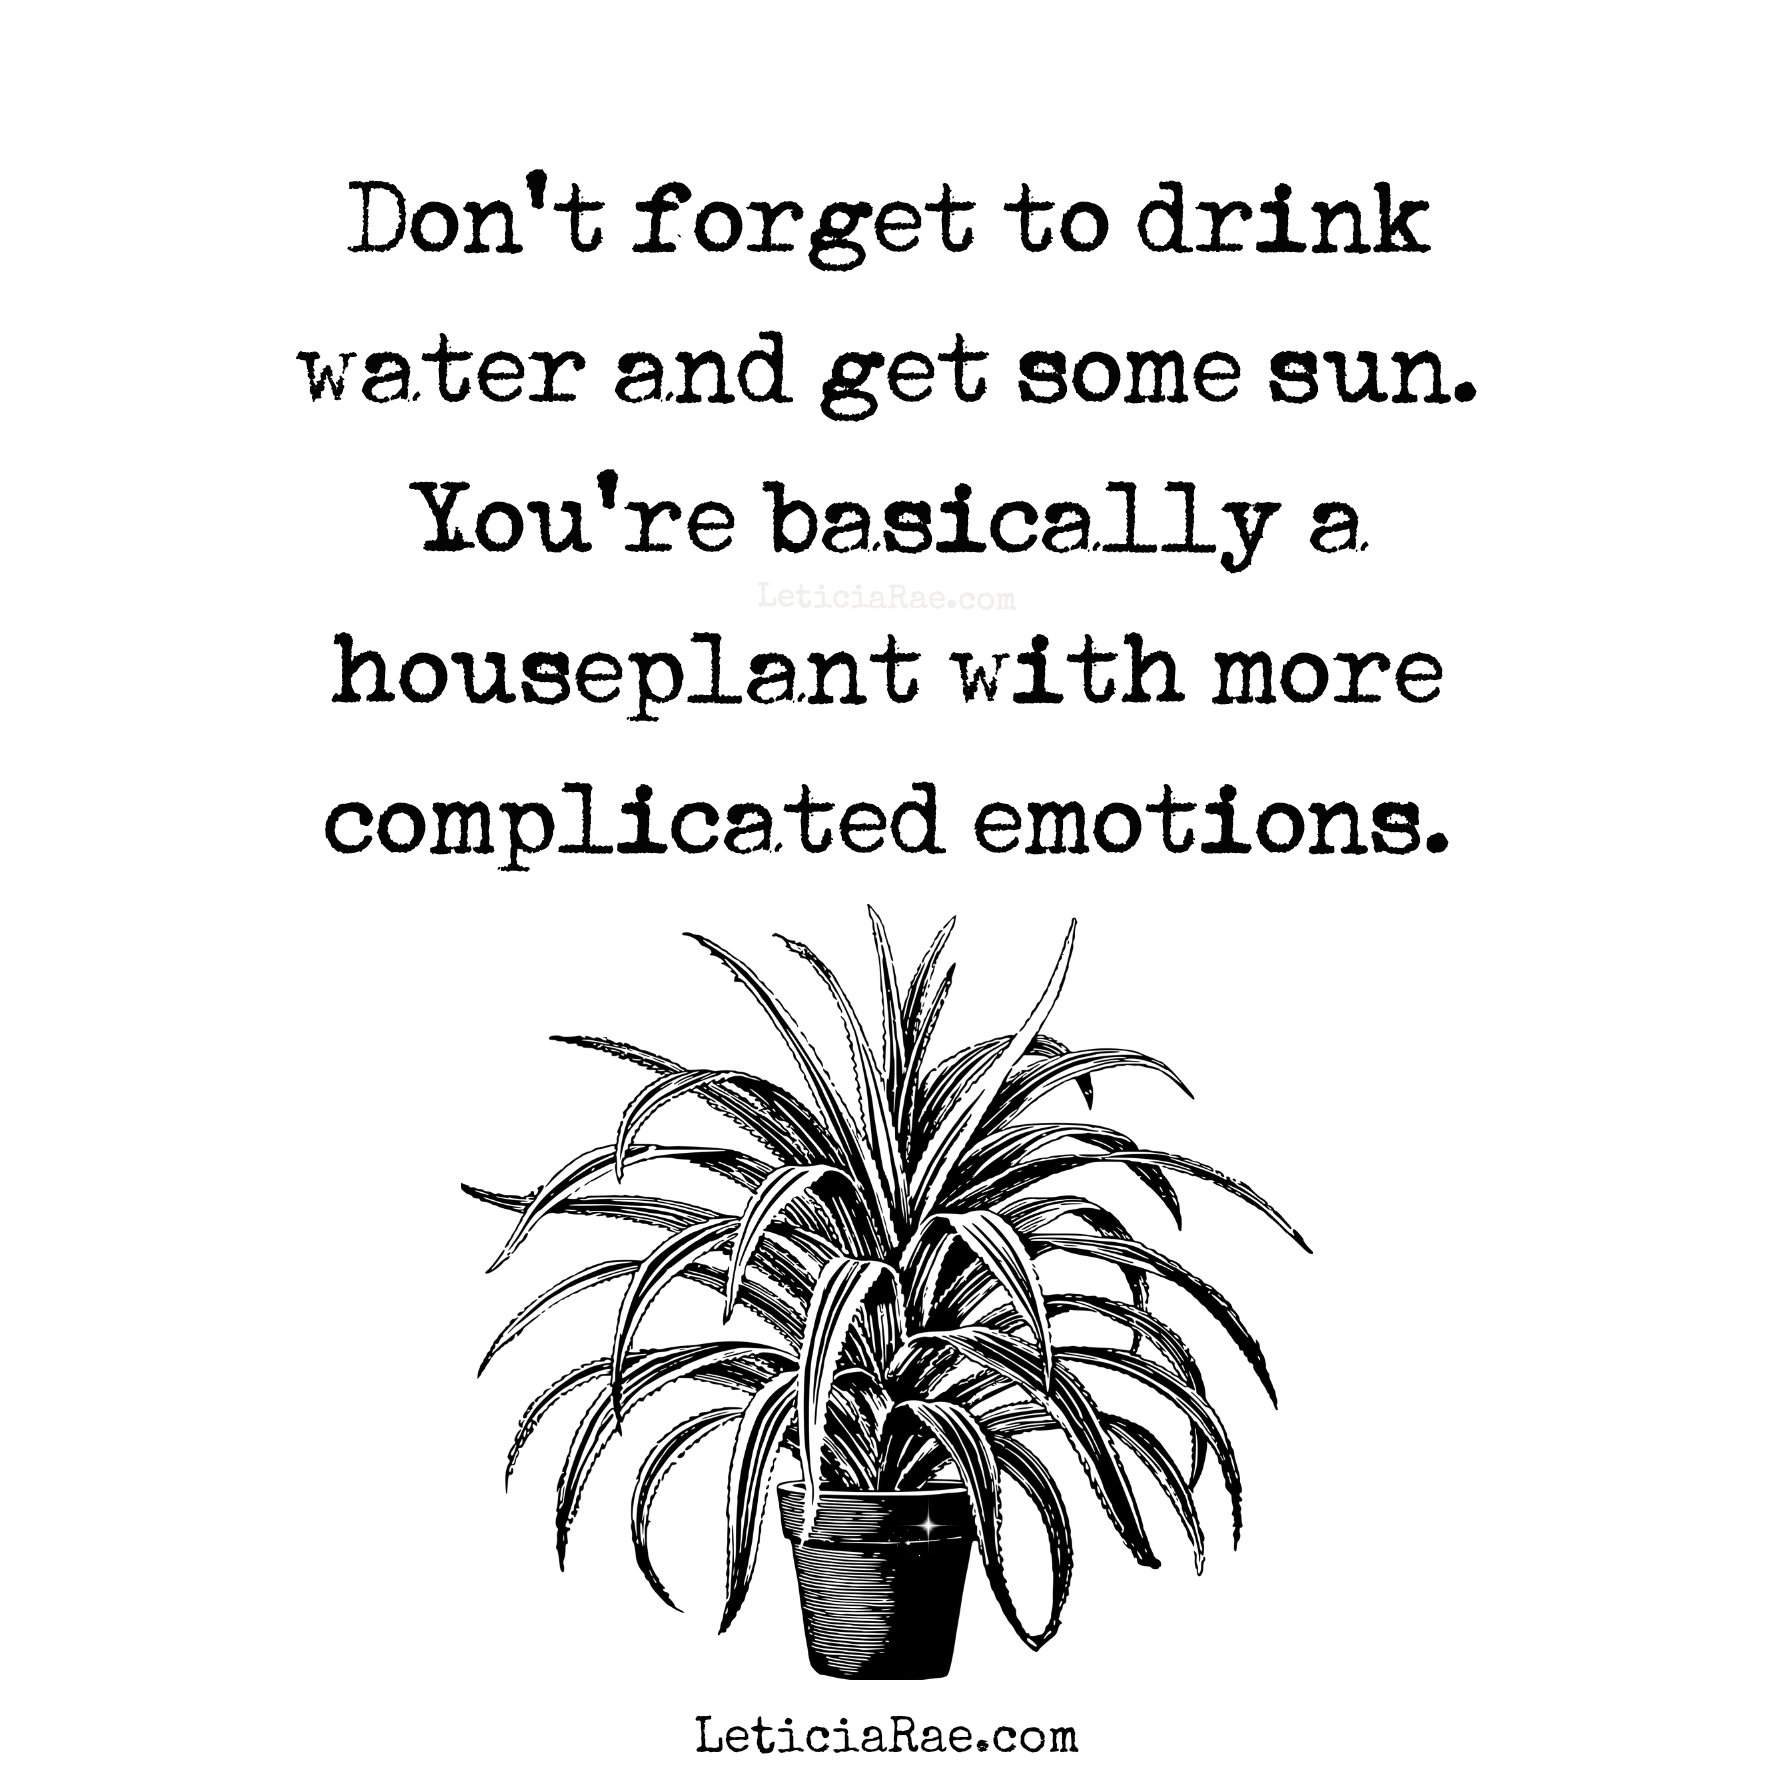 Finding The Silver Lining Drink Water Quotes Water Quotes Drinking Water